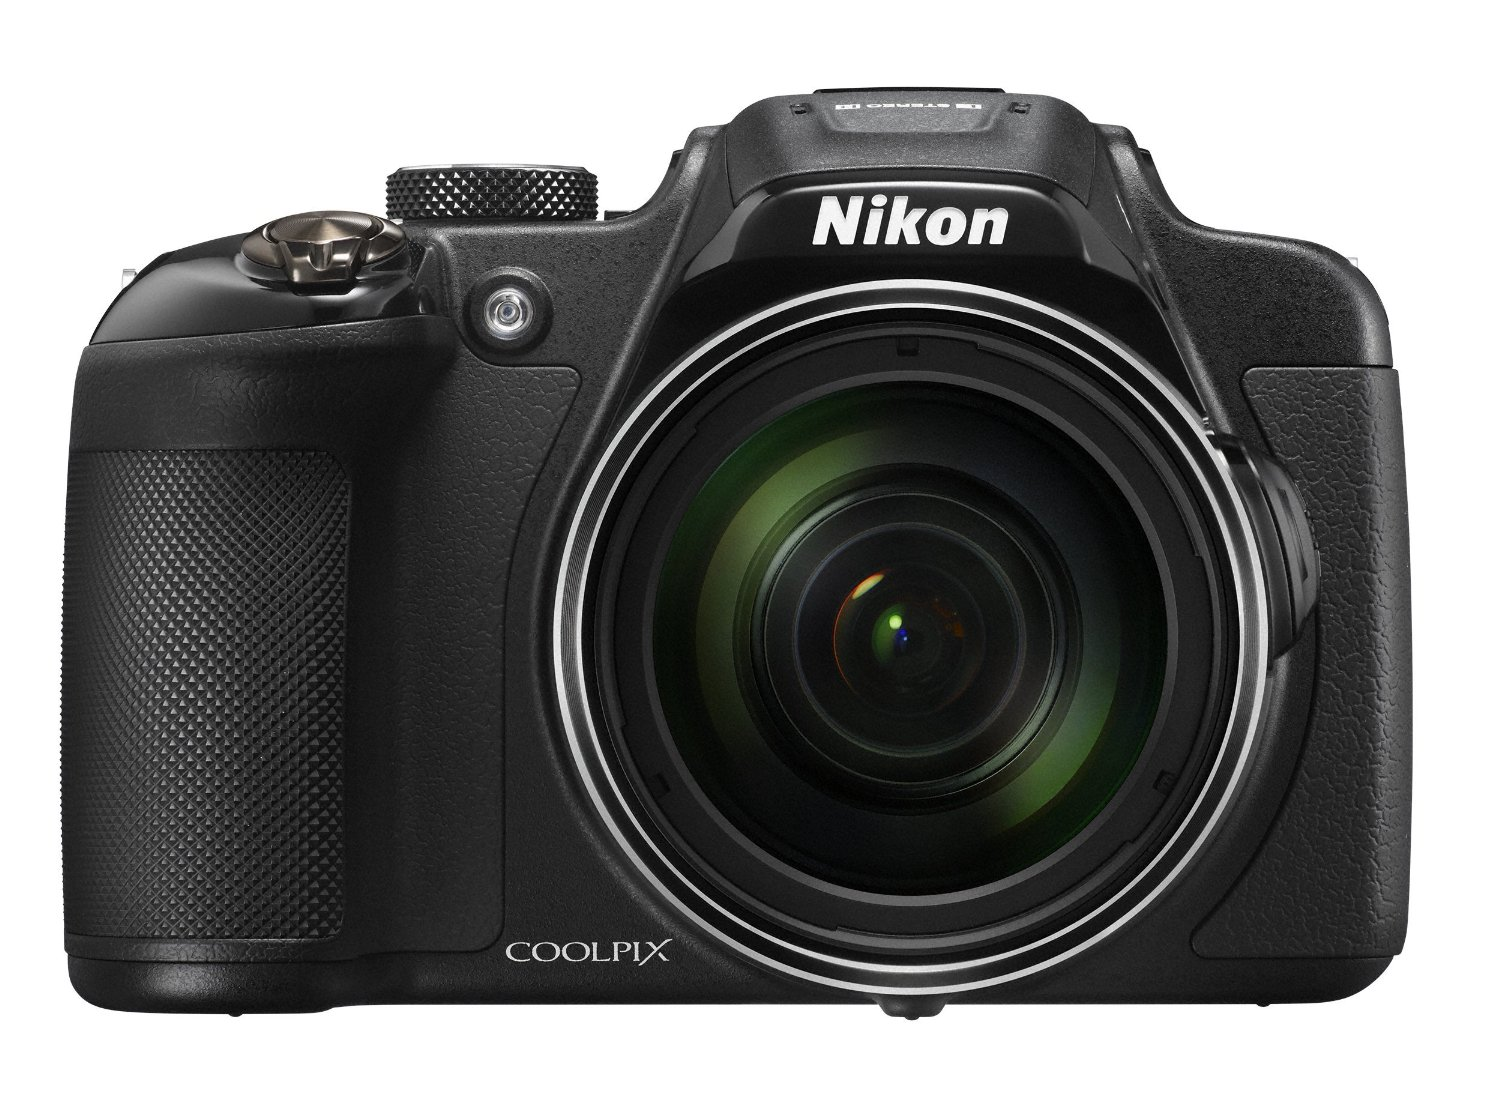 Nikon COOLPIX P610 Digital Camera 60x Optical Zoom Wi-Fi